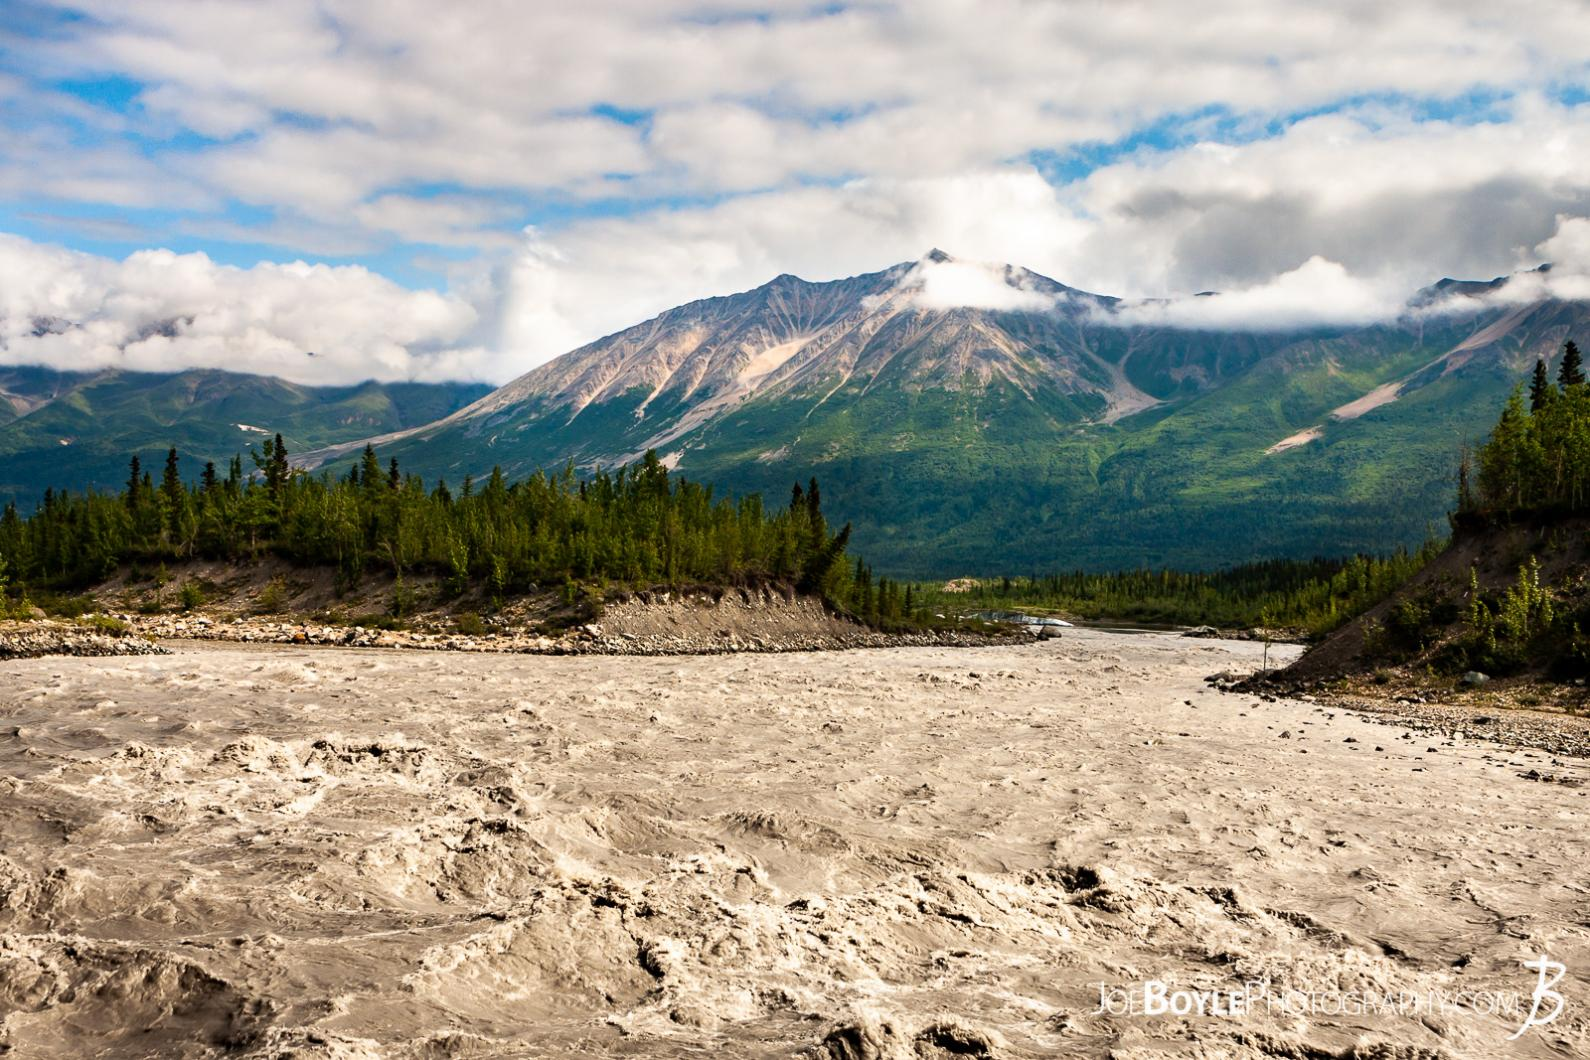 alaskan-mountain-range-and-kennicott-river-end-of-mccarthy-road